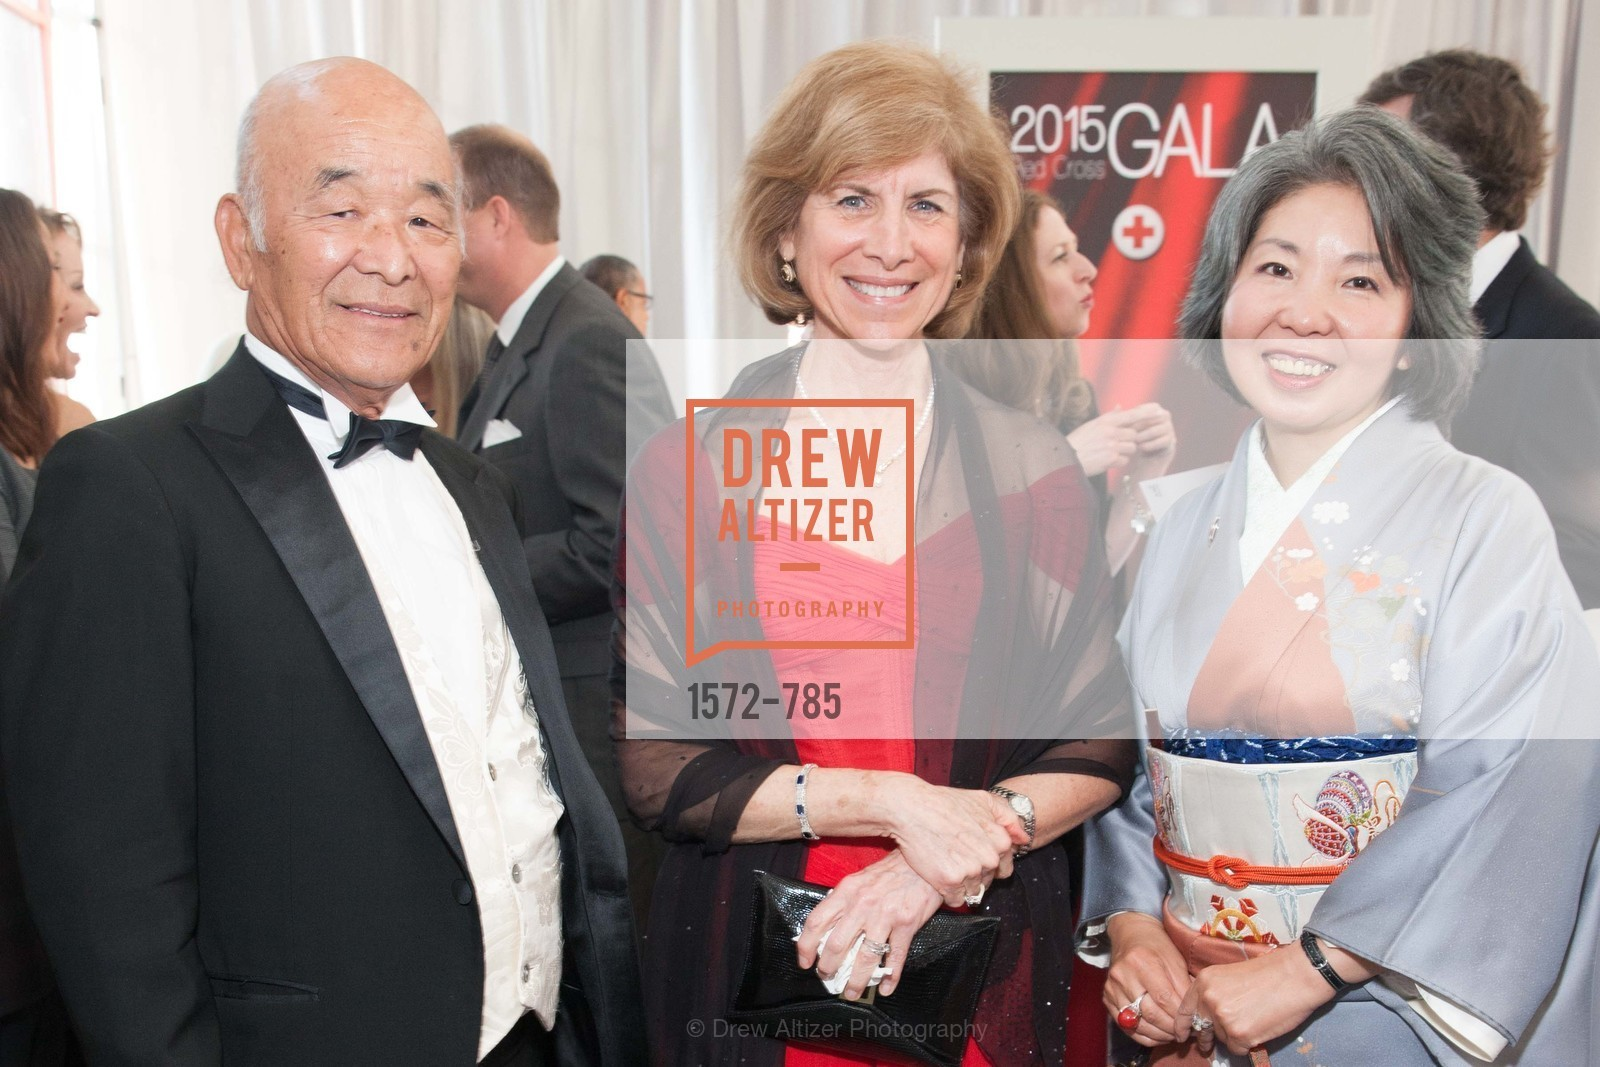 Hiro Ogawa, Gail McGovern, Kazue Watanabe, 2015 RED CROSS Gala, US, April 12th, 2015,Drew Altizer, Drew Altizer Photography, full-service agency, private events, San Francisco photographer, photographer california